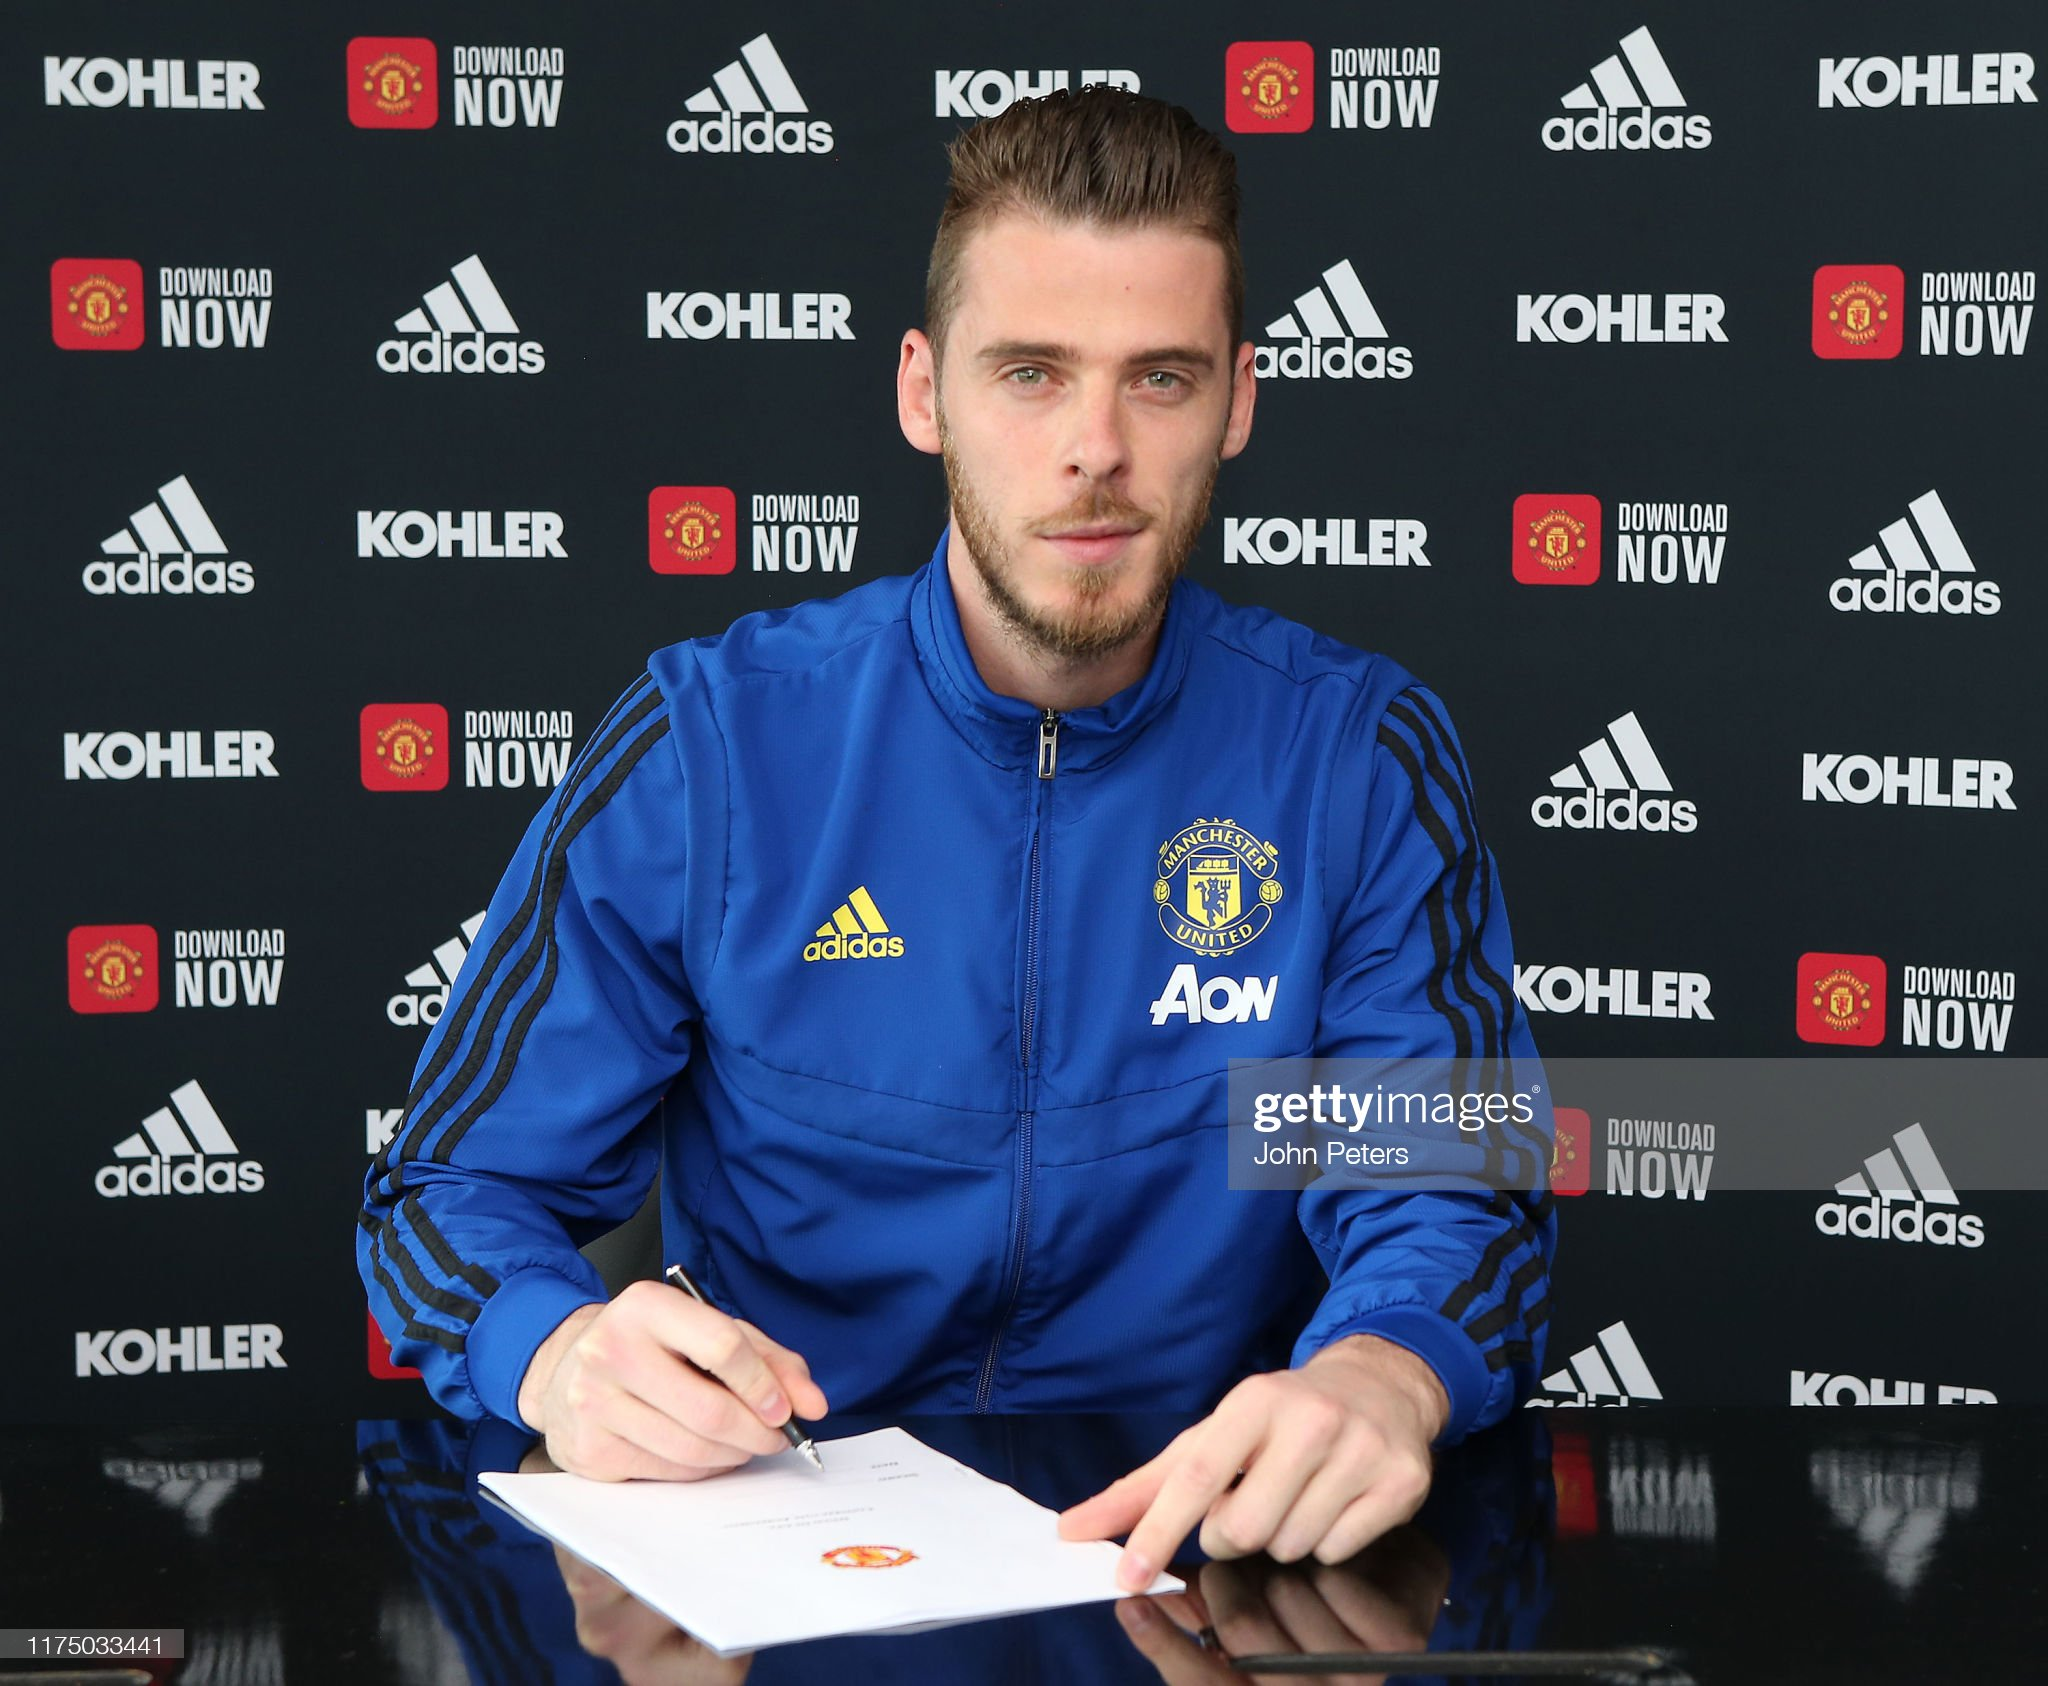 https://media.gettyimages.com/photos/david-de-gea-of-manchester-united-poses-after-signing-a-new-contract-picture-id1175033441?s=2048x2048